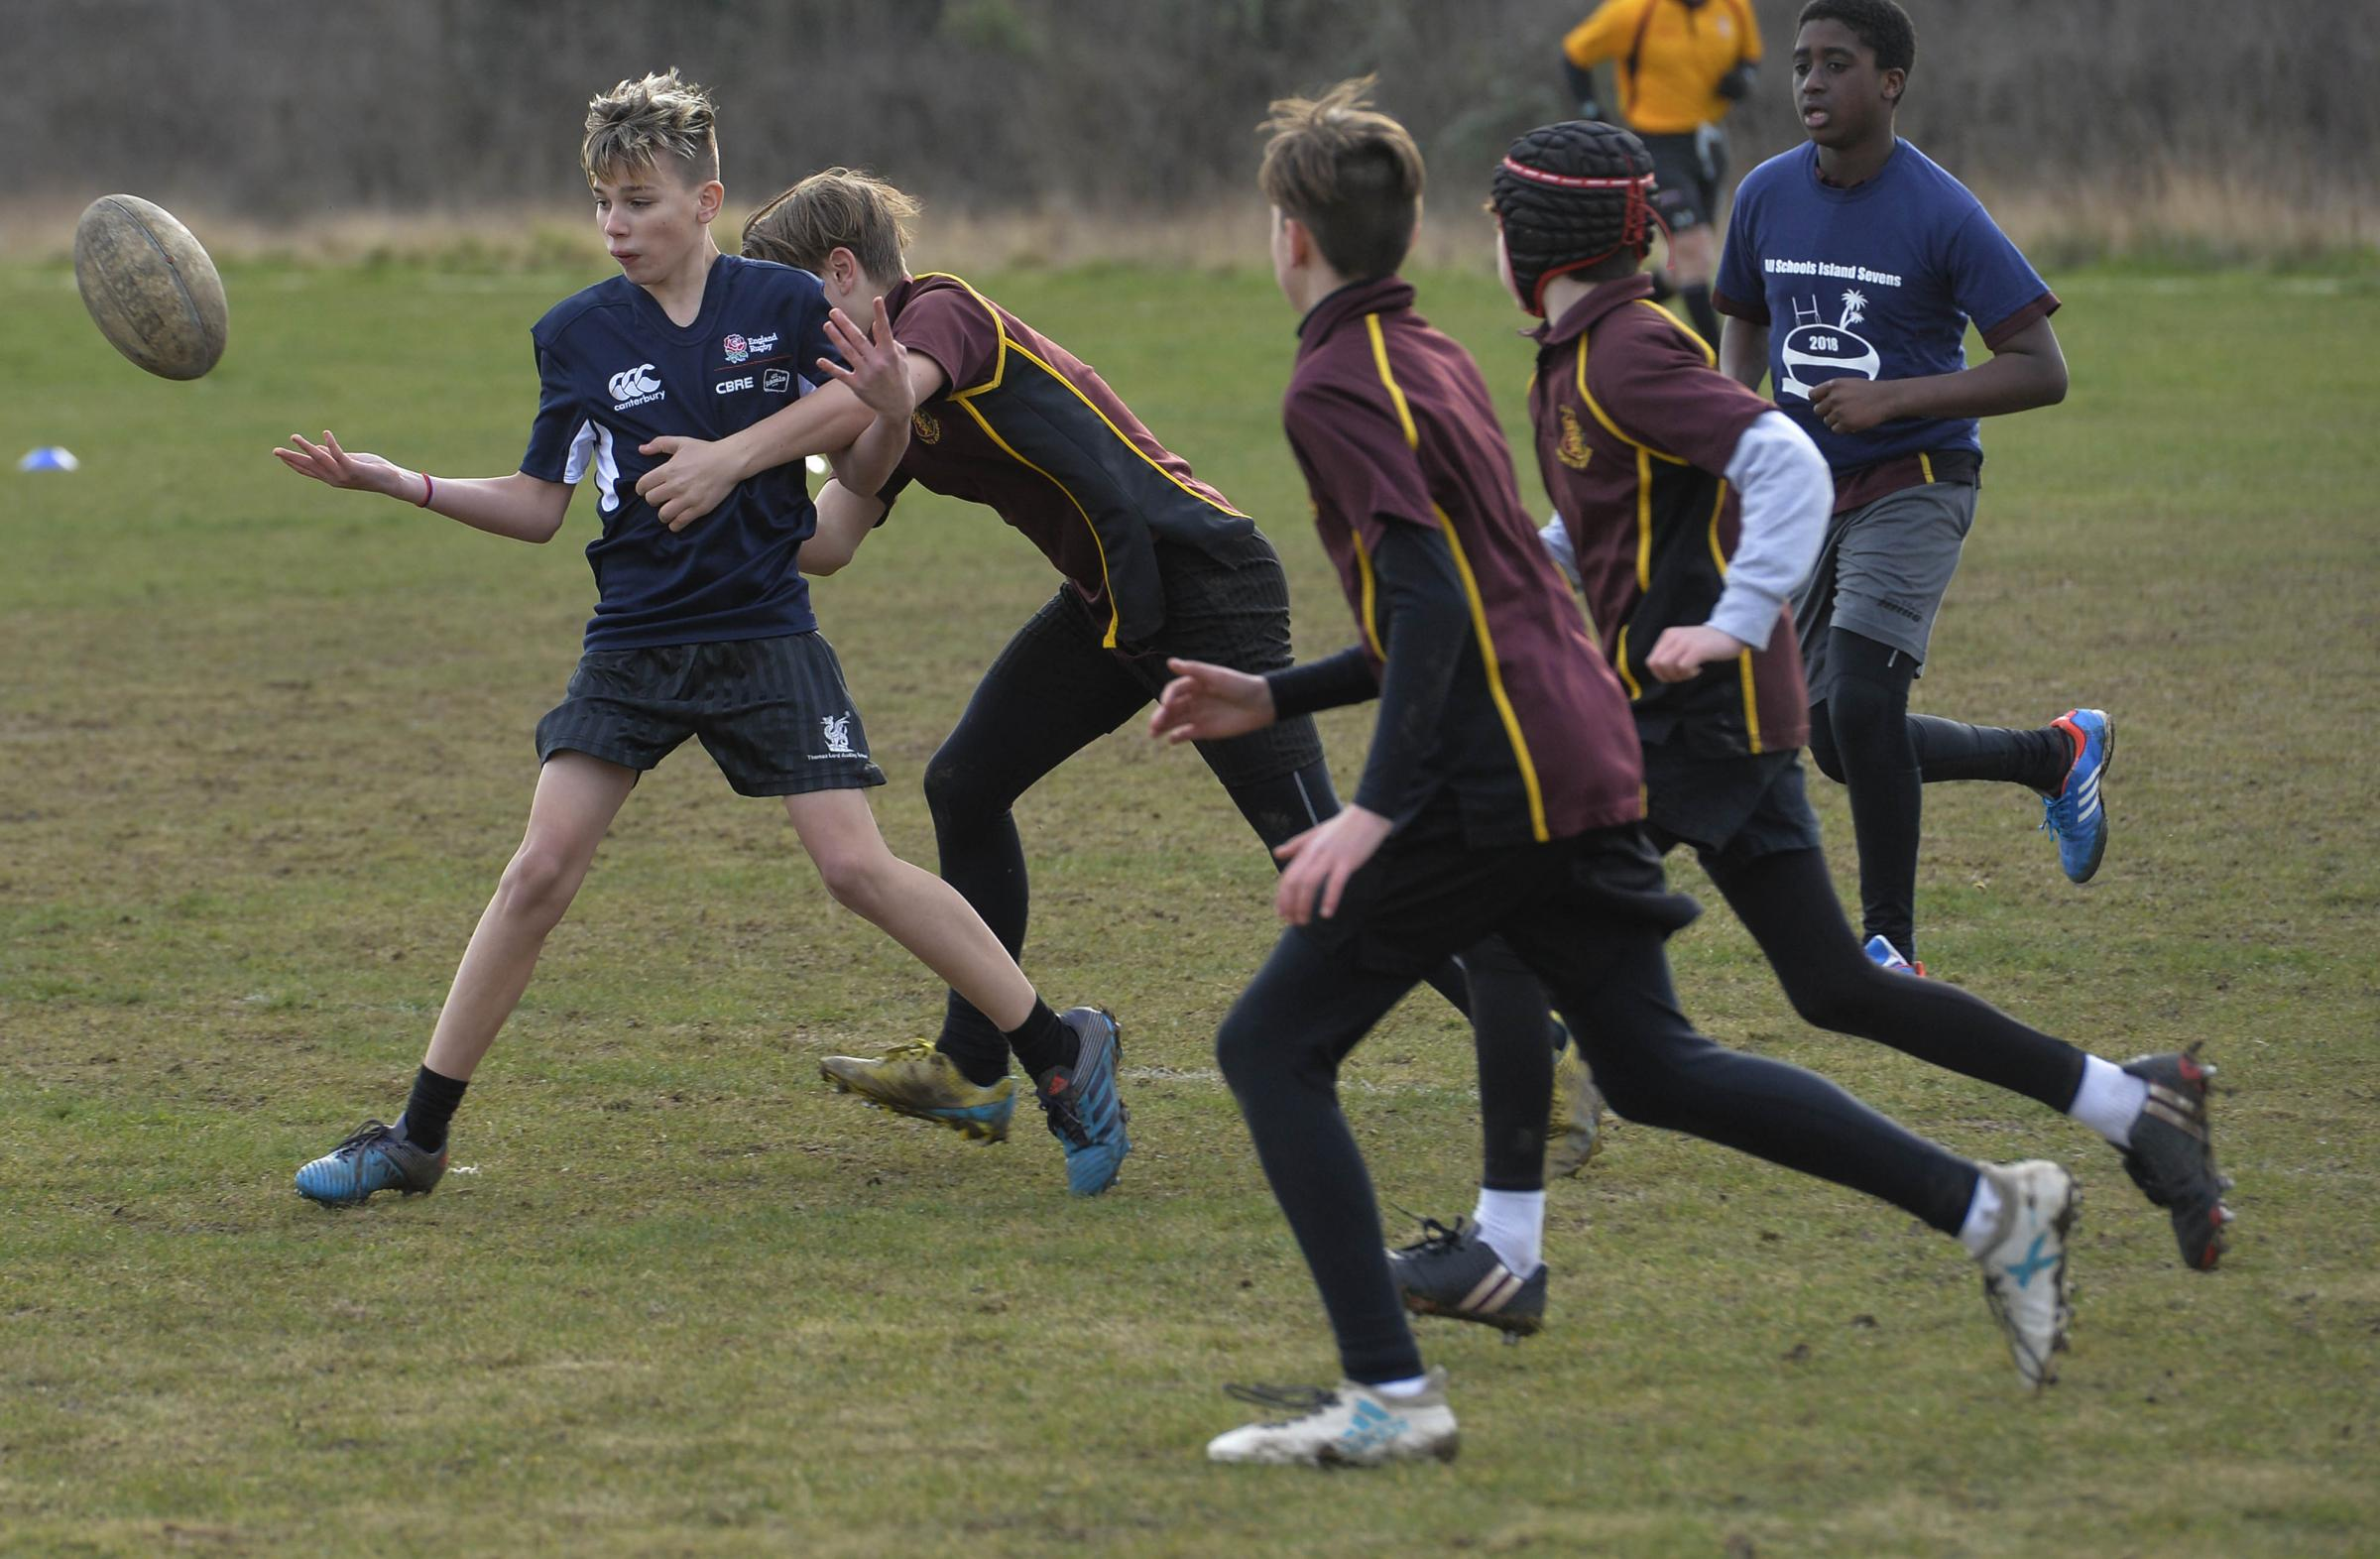 Action from the inaugural All Schools Island Sevens Festival, at The Glebe Picture: Steve Brading